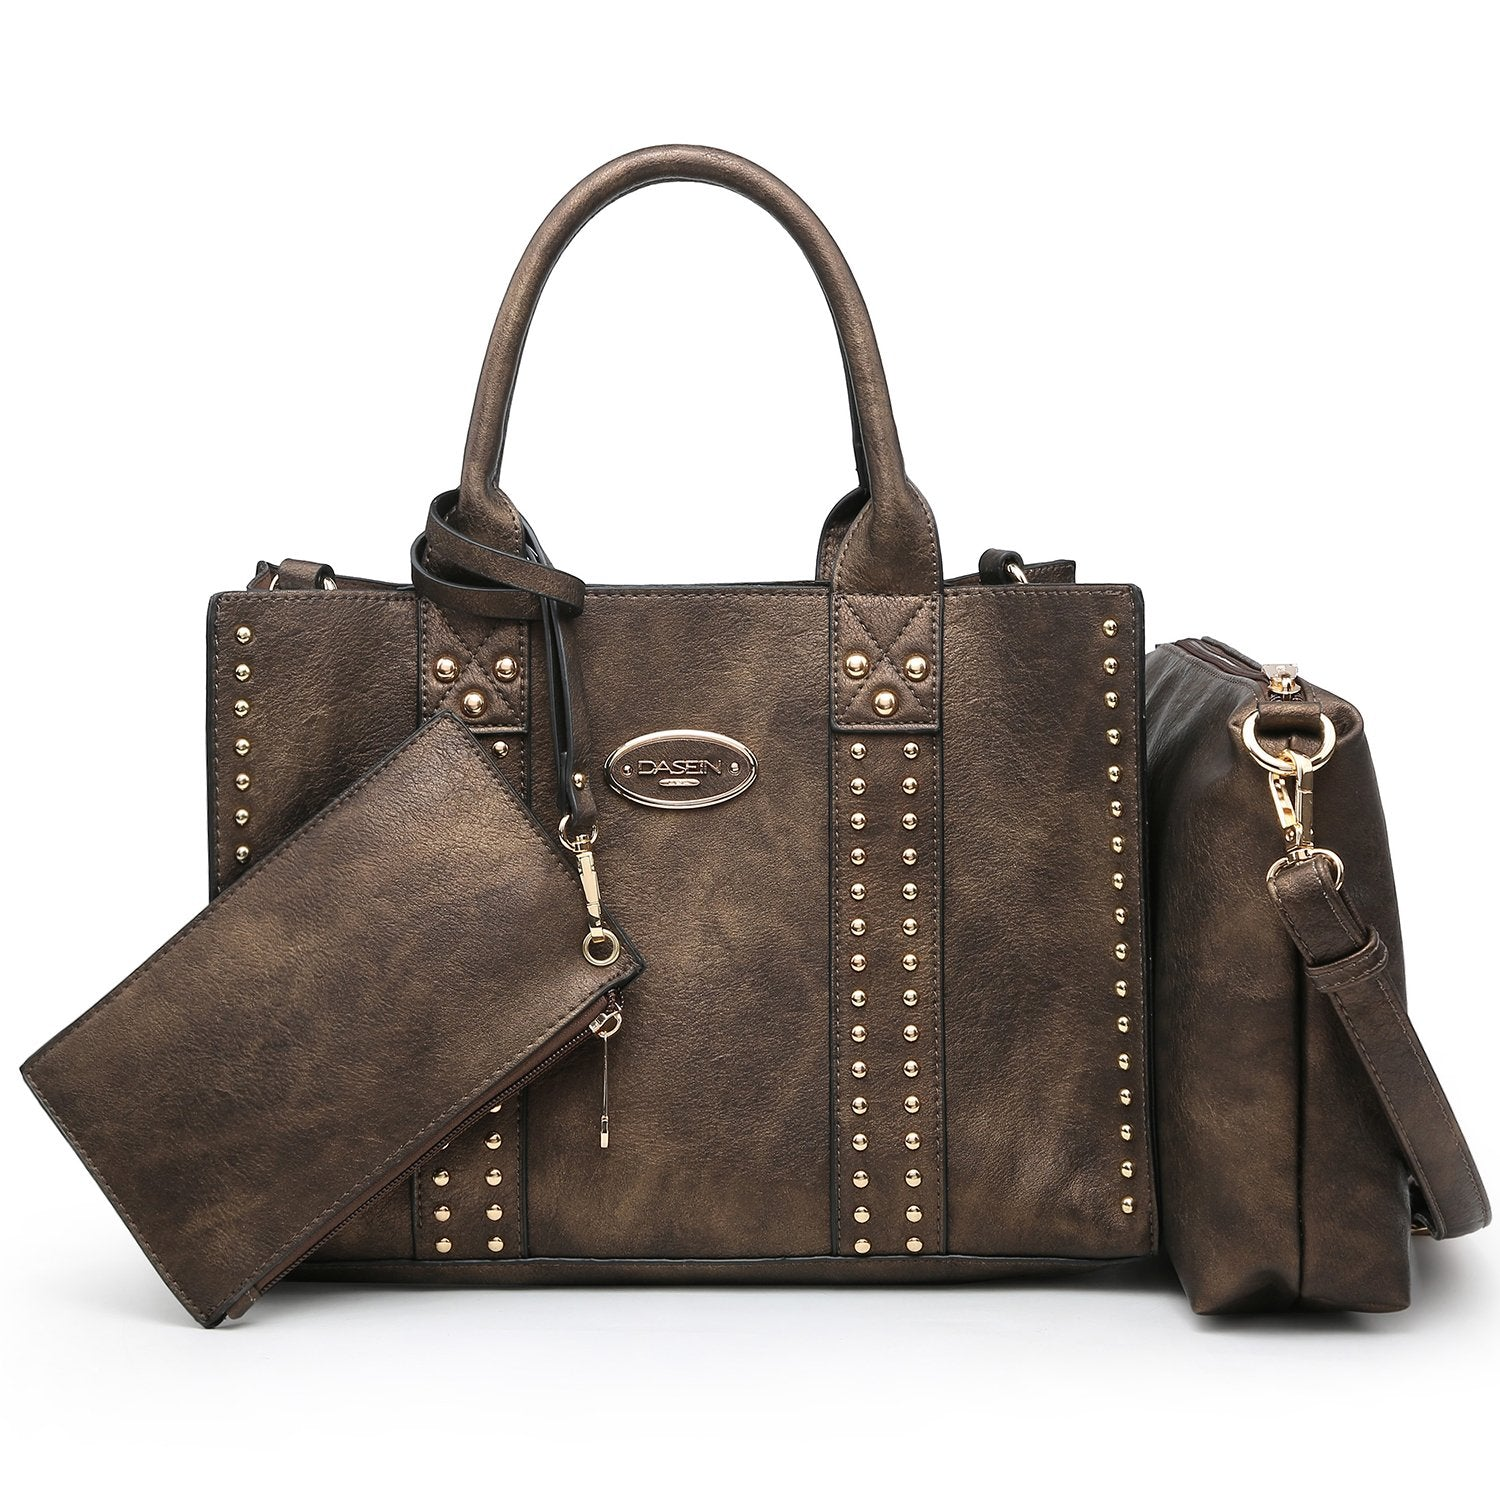 Studded 3-in-1 Top Handle Tote Handbag丨Dasein